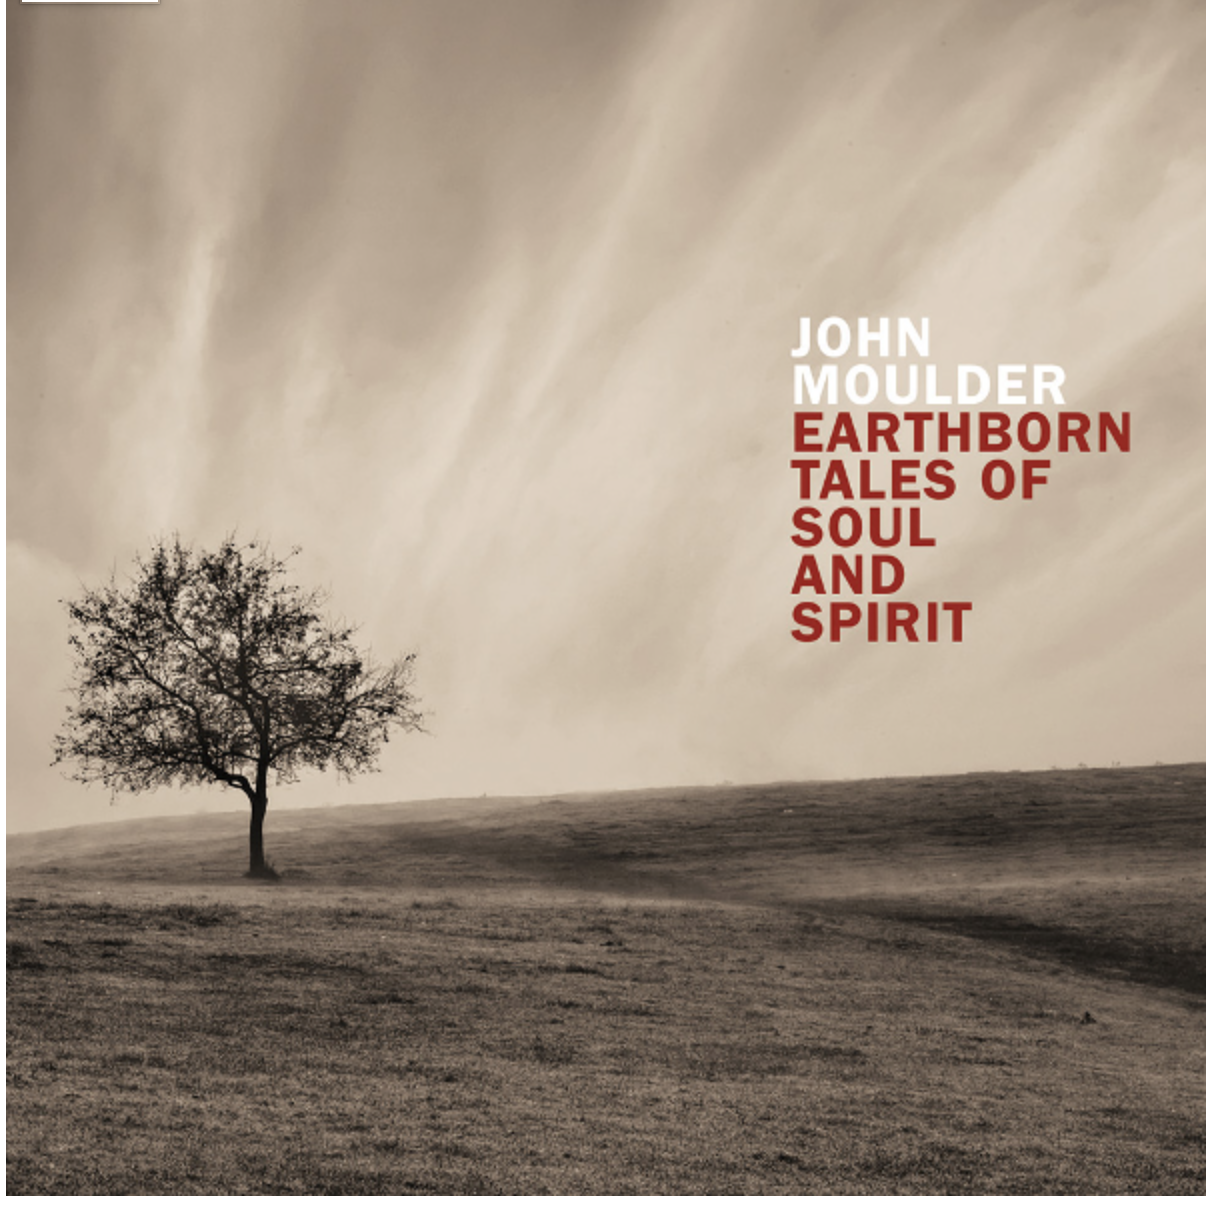 John Moulder Earthborn Tales